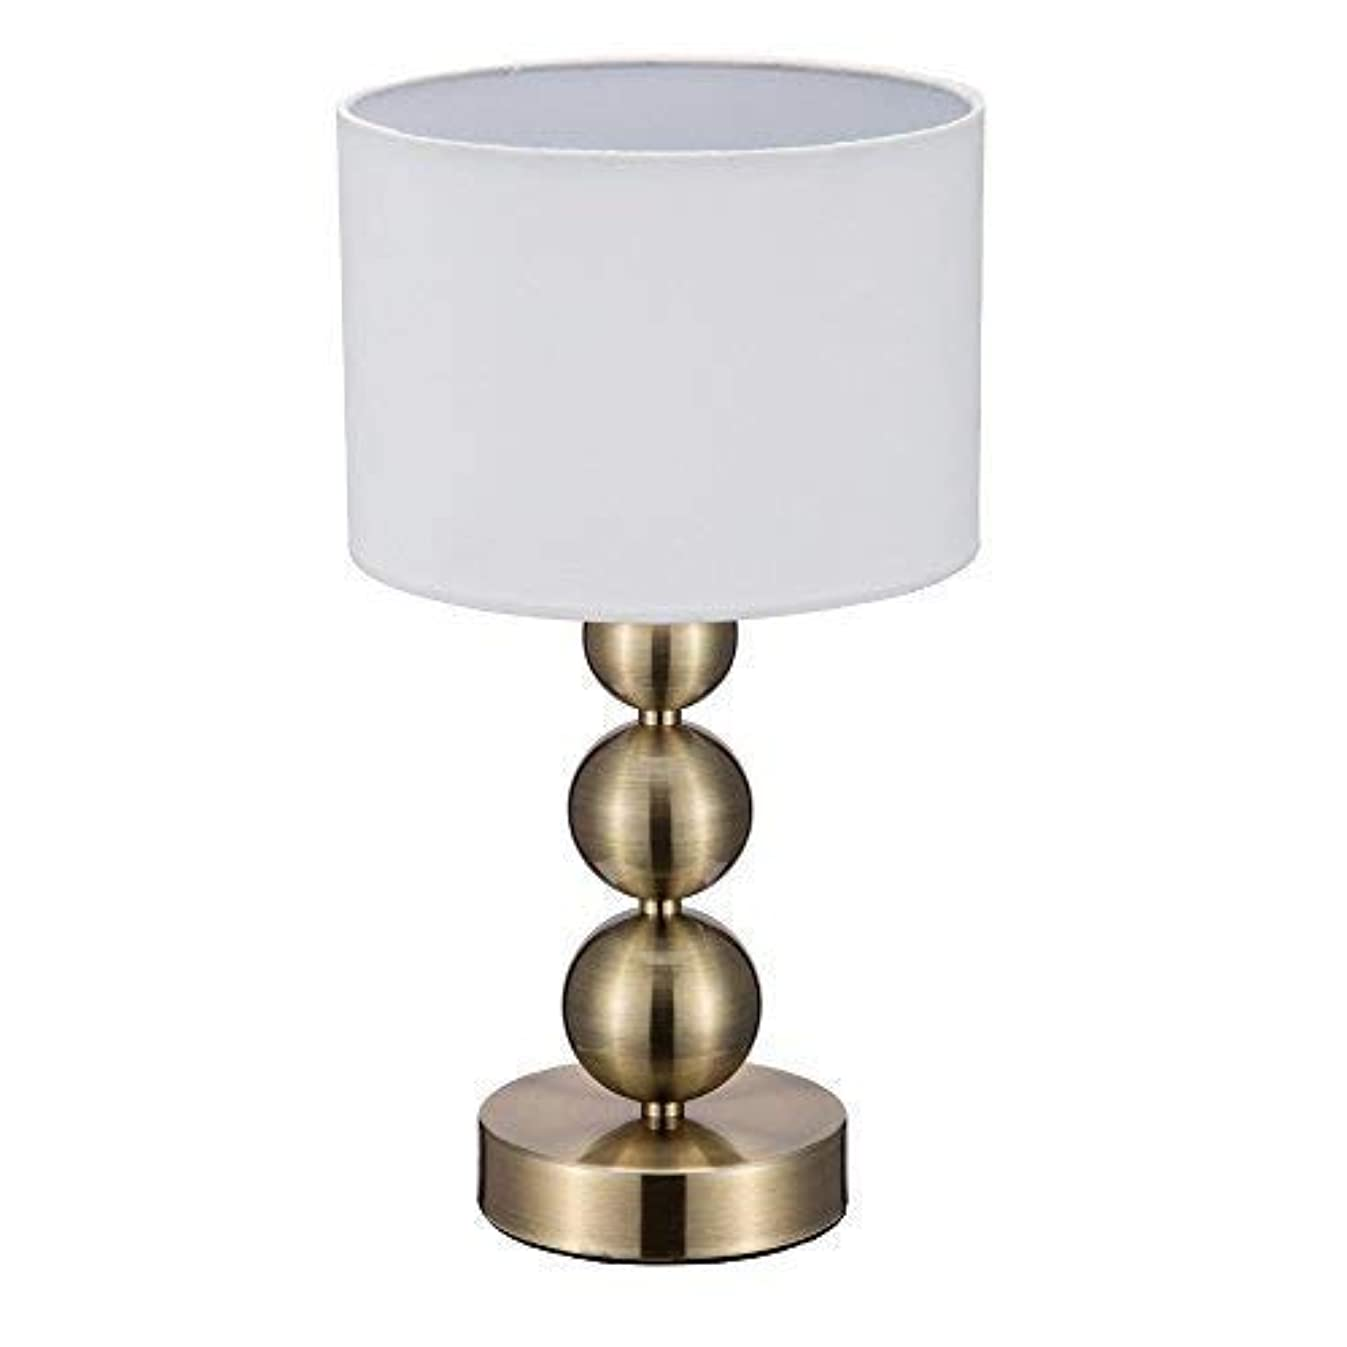 JINZO Portable Touch Table Lamps Small Accent Bedside Lamps for bedrooms with Touch Sensor Dimmable Antique Brass Finished